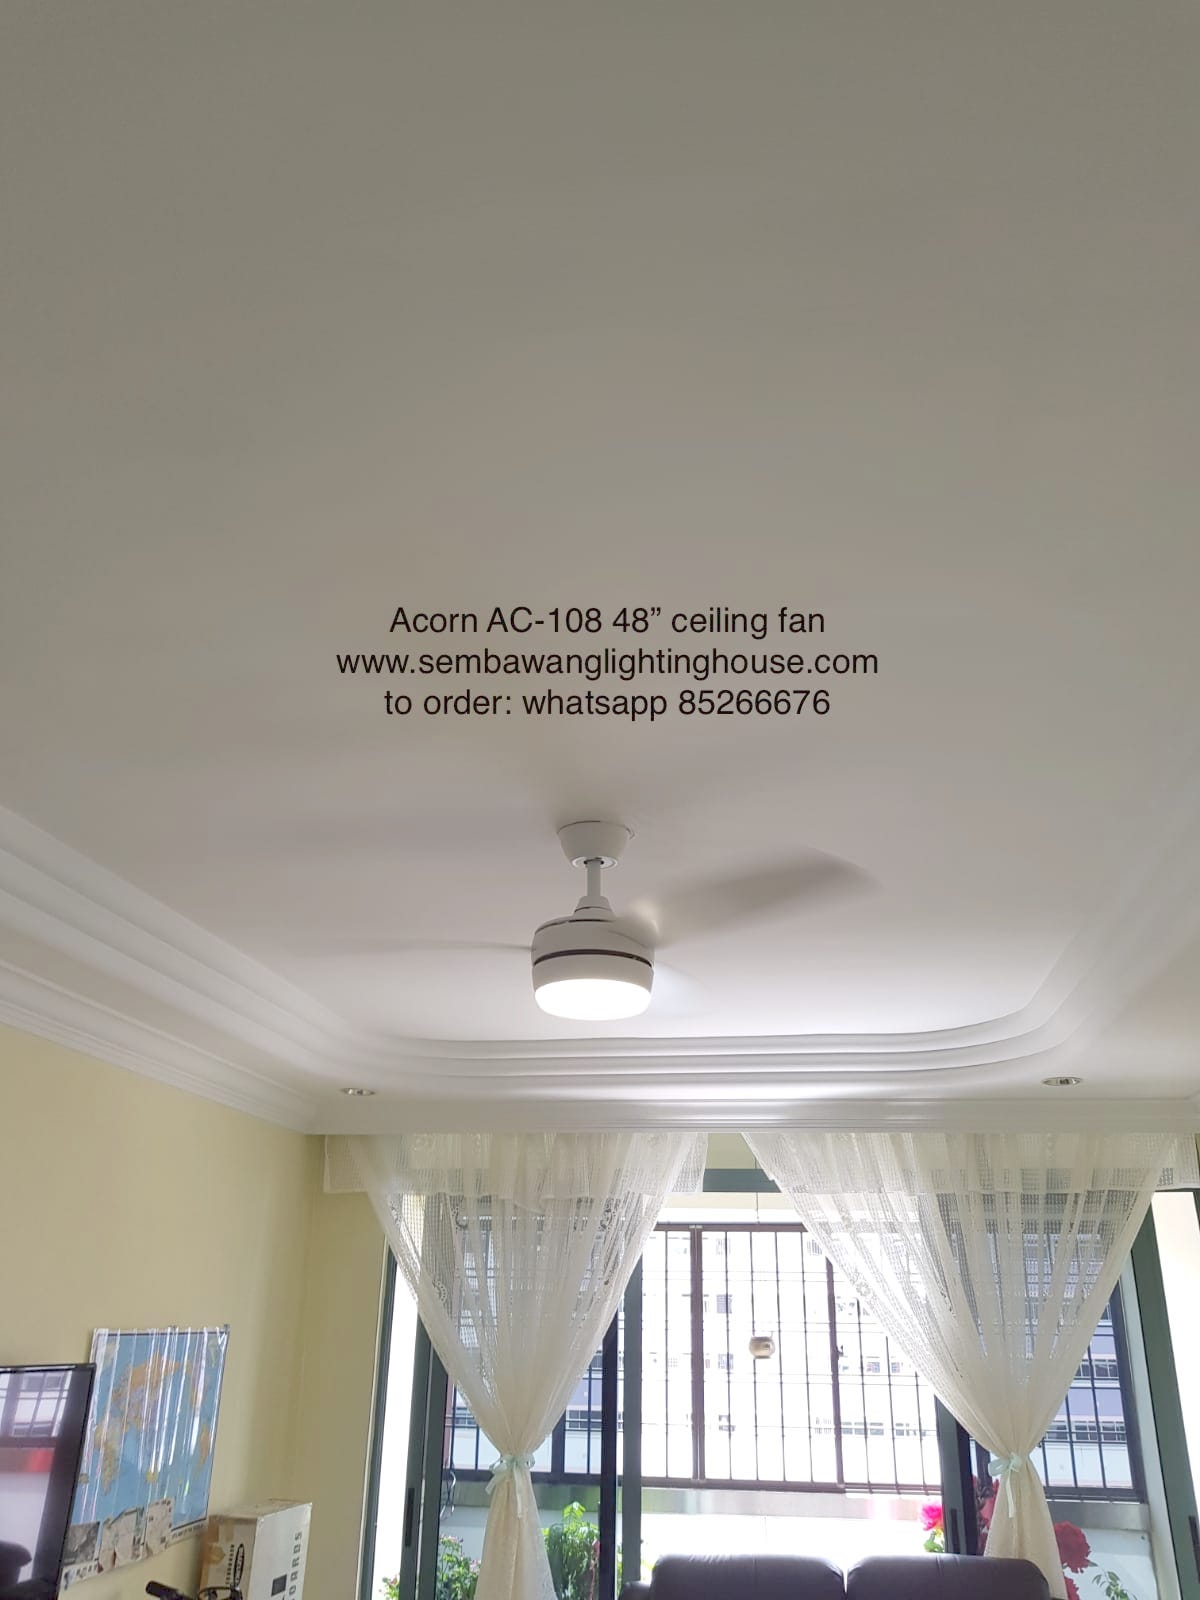 sample-01-acorn-ac108-ceiling-fan-white-sembawang-lighting-house.jpg